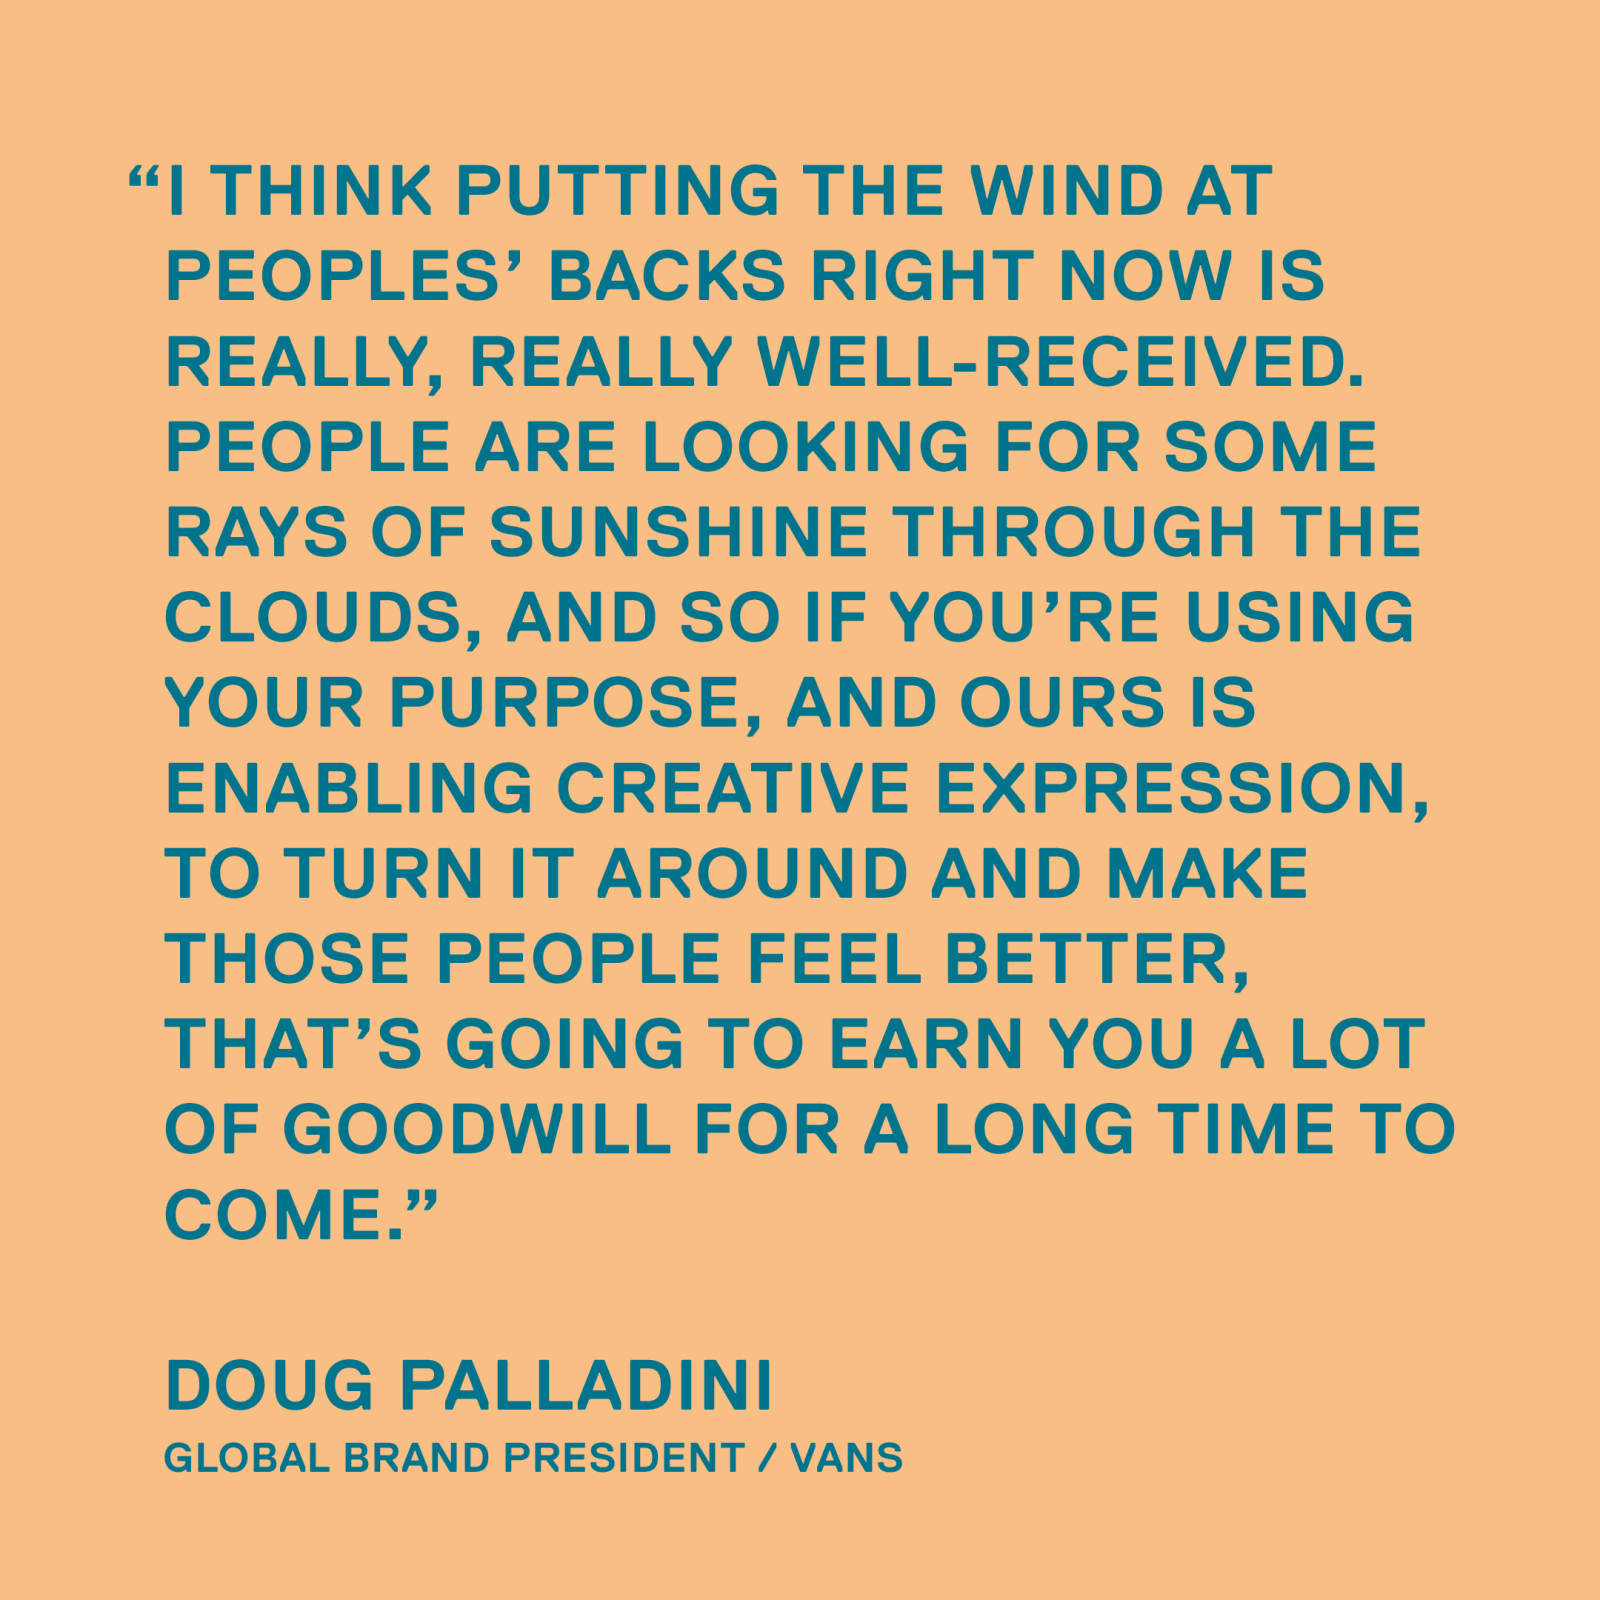 I think putting the wind at peoples' backs right now is really, really well-received. People are looking for some rays of sunshine through the clouds, and so if you're using your purpose, and ours is enabling creative expression, to turn it around and make those people feel better, that's going to earn you a lot of goodwill for a long time to come. — Doug Palladini, Global Brand President / Vans